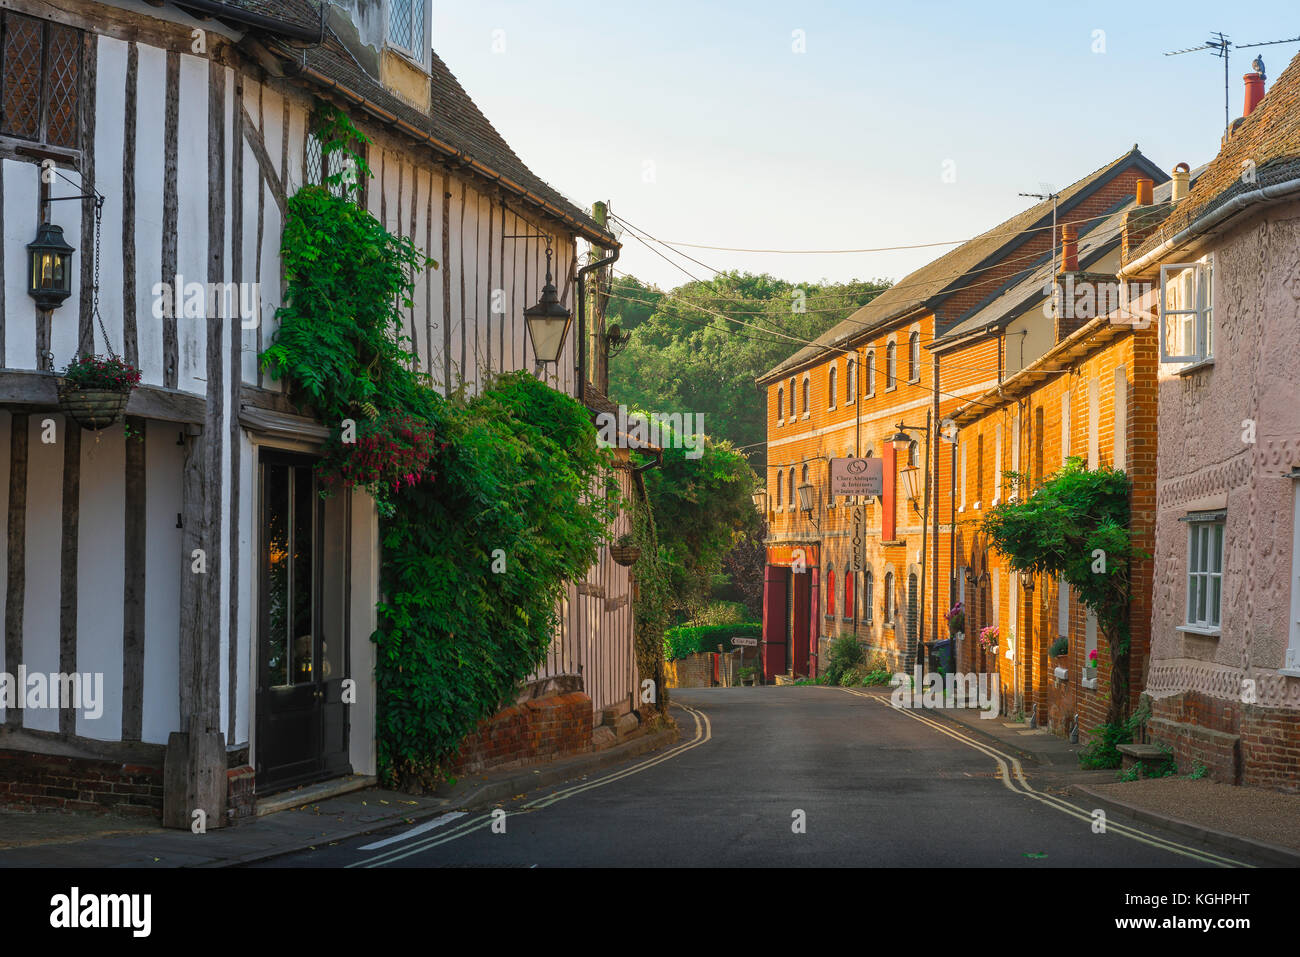 England village street, medieval and 18th century buildings in Maltings Lane in the village of Clare, Suffolk, England, - Stock Image